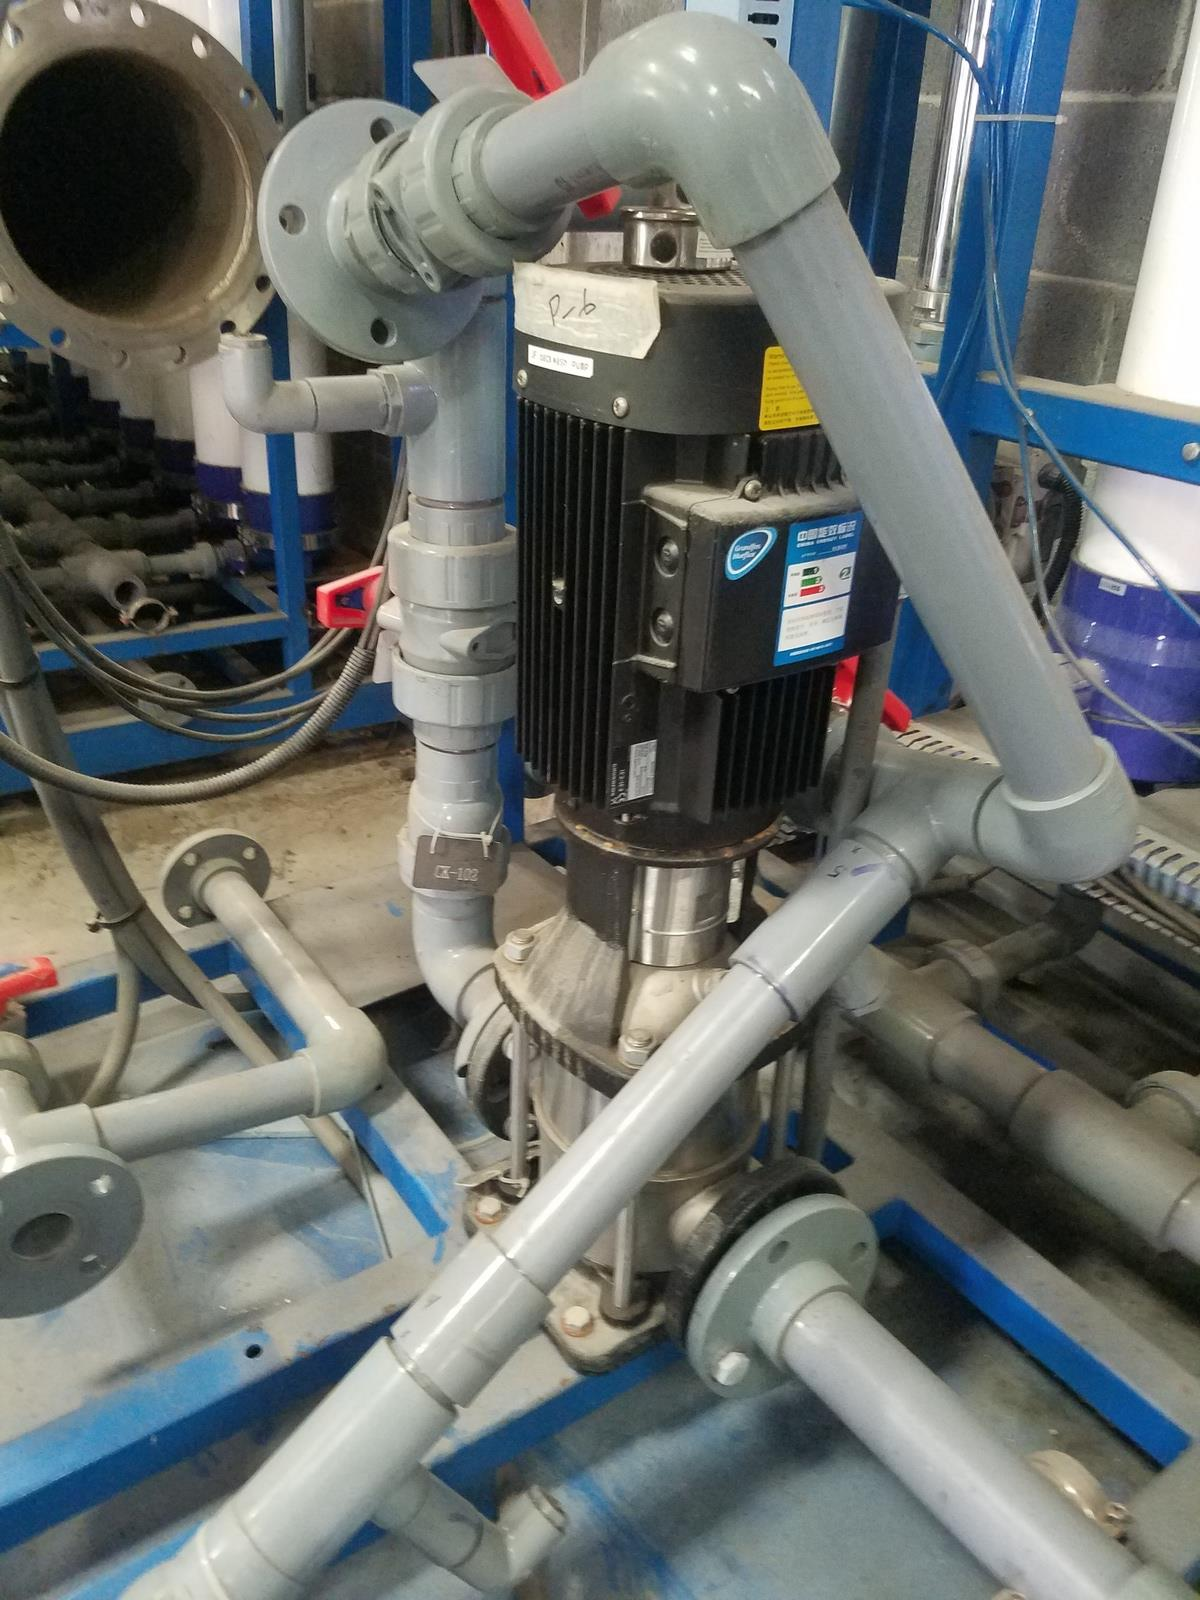 Petro Sep UF Membrane Filtration Skid System, Includes (2) SS Cartridge Filters, | Rig Fee: $1200 - Image 3 of 13